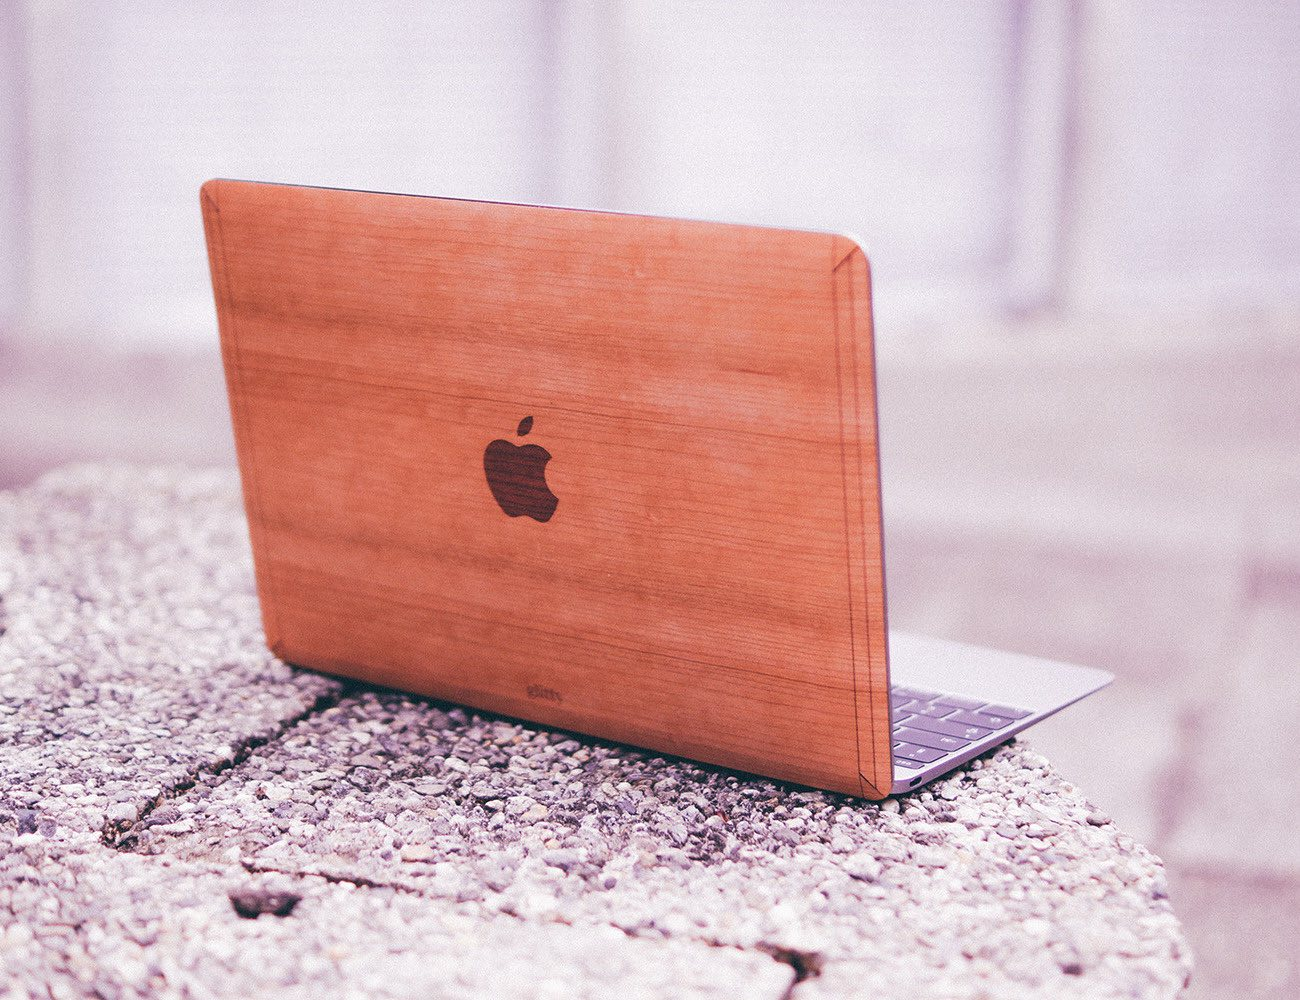 Cherry+For+Macbook+12%26%238221%3B+%26%238211%3B+Handmade+Cherry+Wood+Cover+Made+In+USA